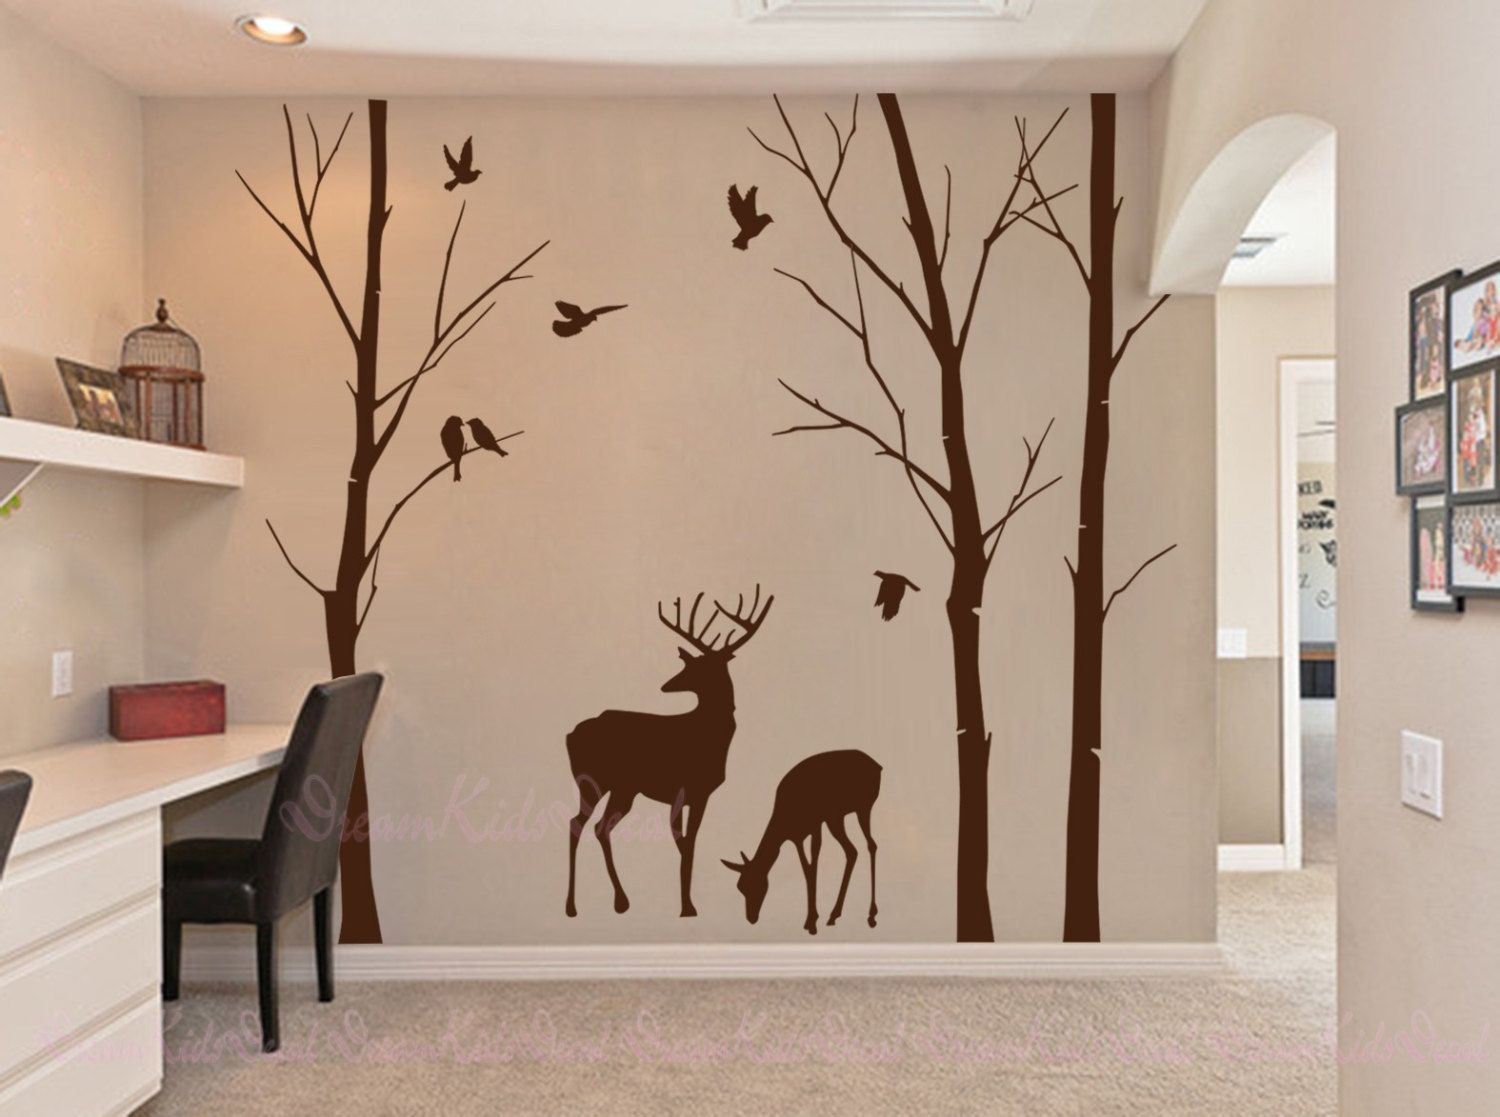 Birch trees decals deer wall decals nature wall by dreamkidsdecal birch trees decals deer wall decals nature wall by dreamkidsdecal 7500 amipublicfo Choice Image